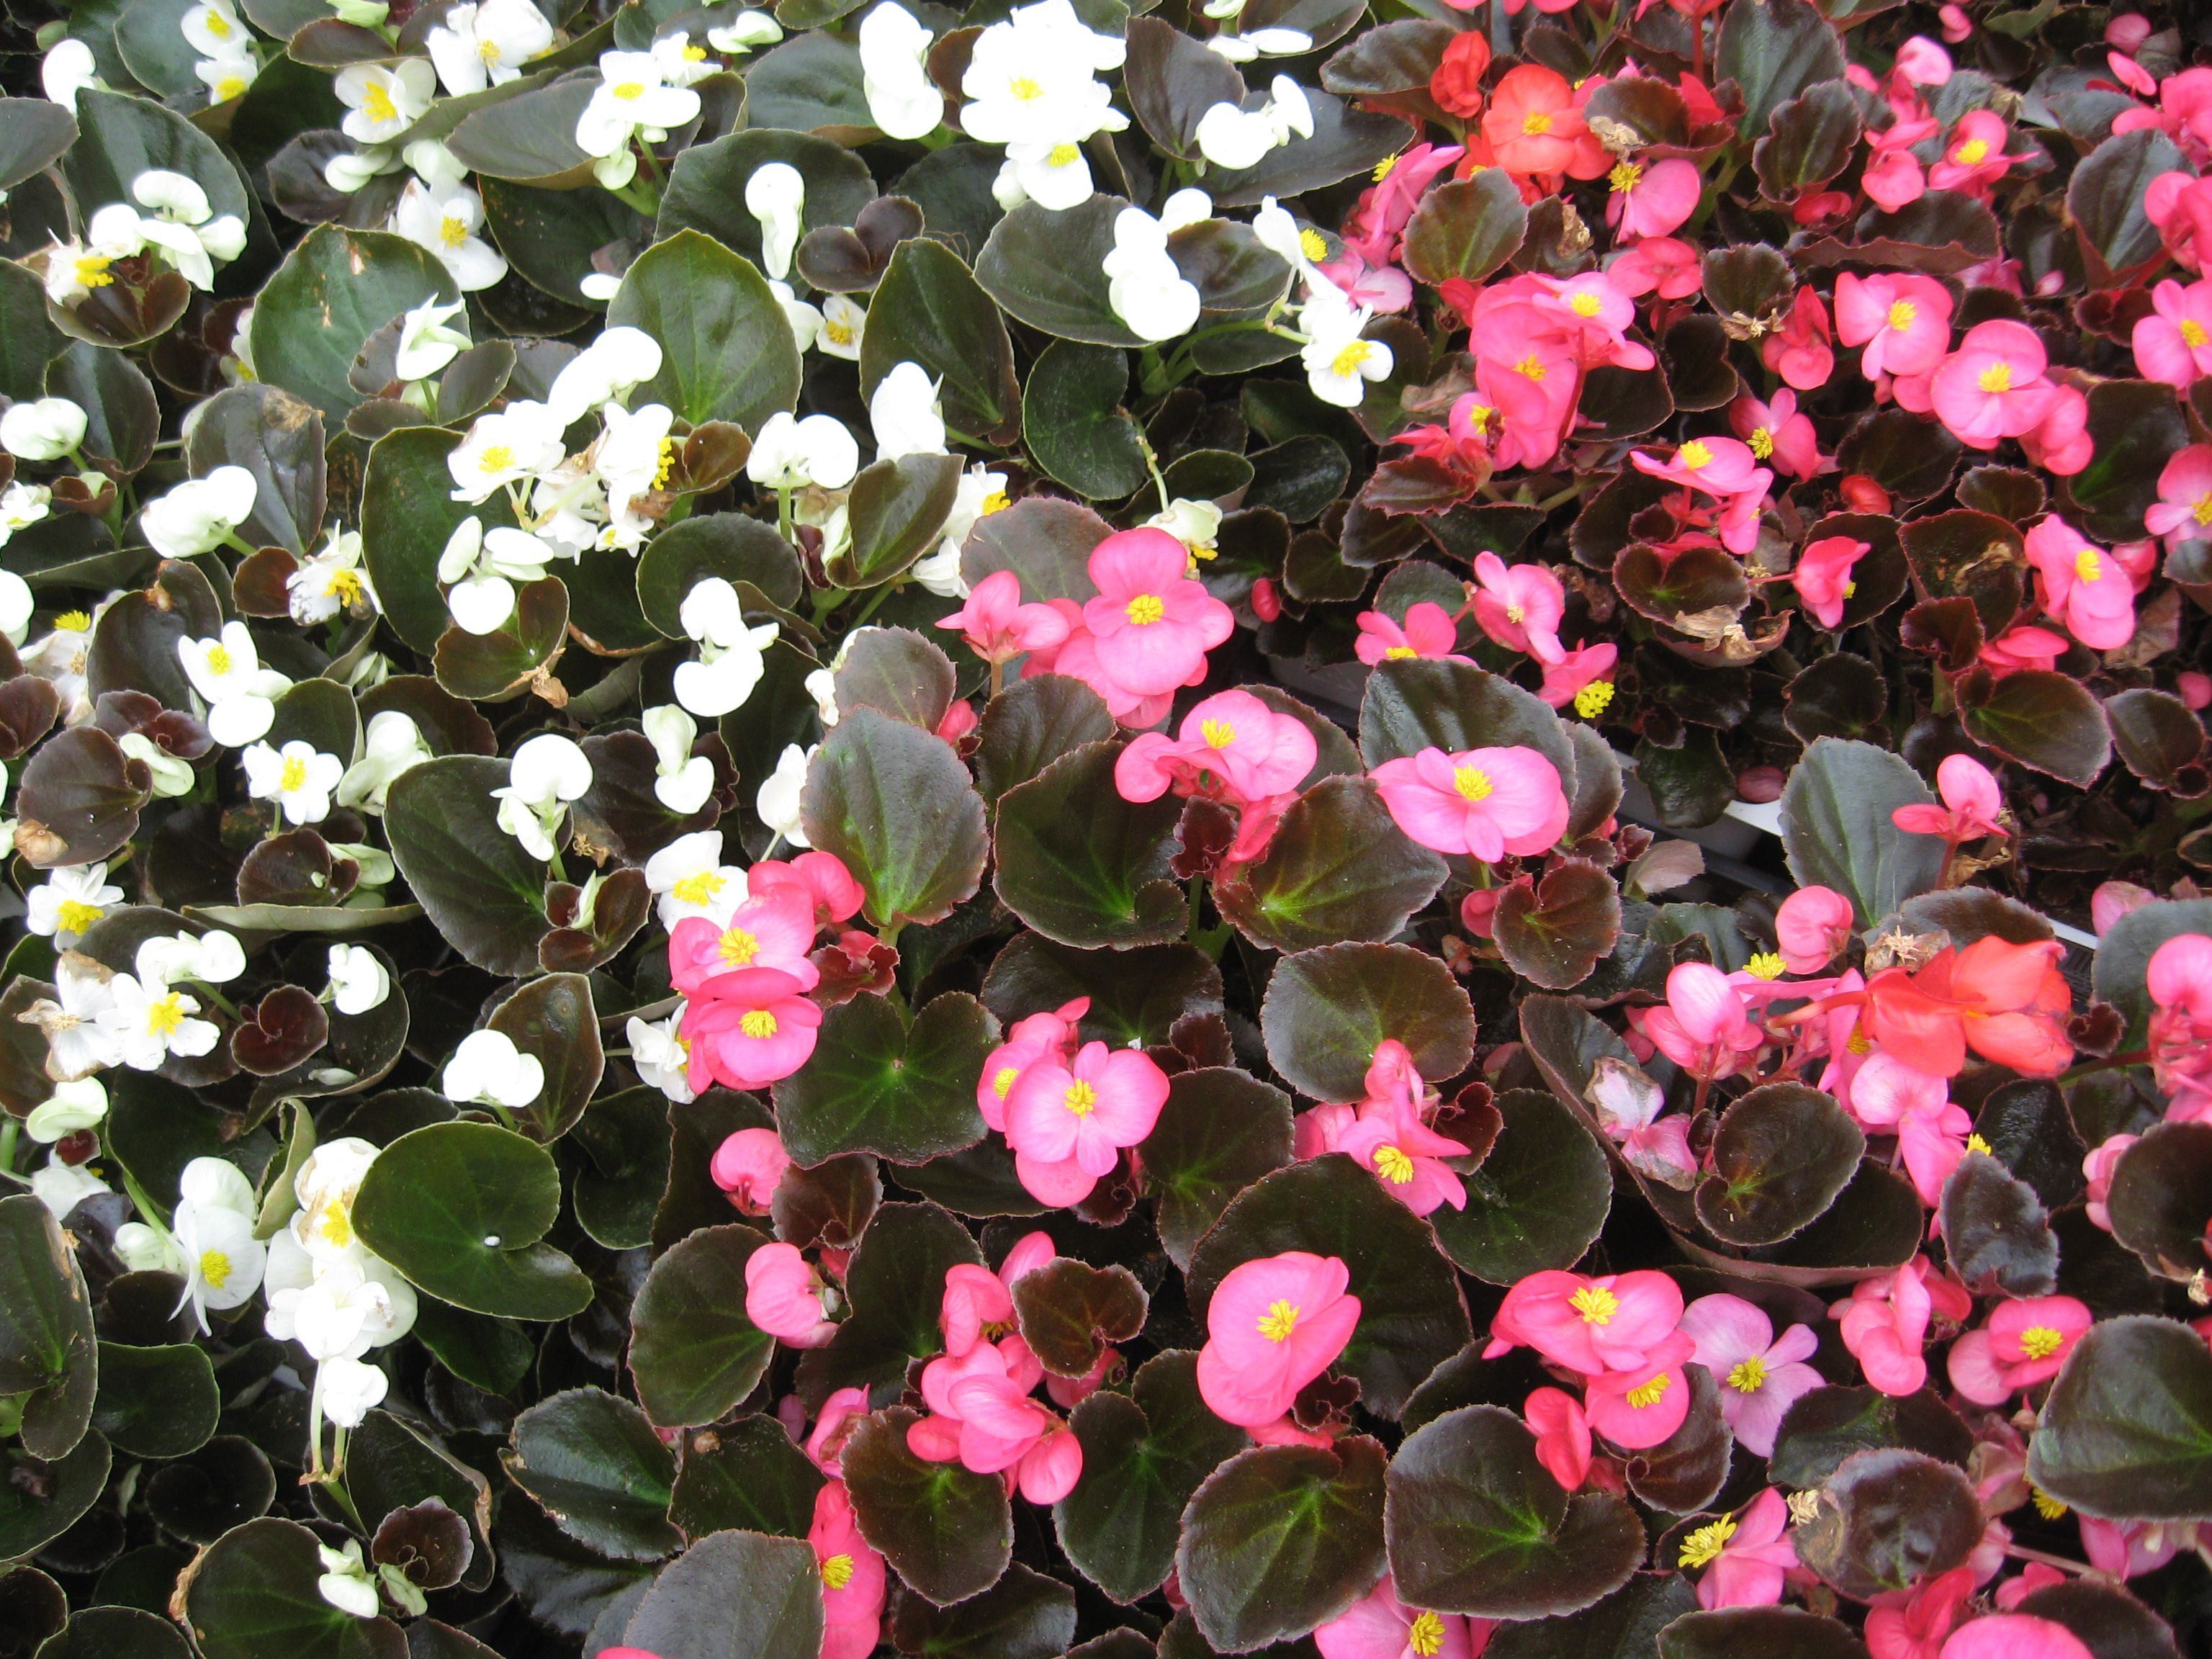 Dozens of white and pink bronze leaf wax begonias next to each other.